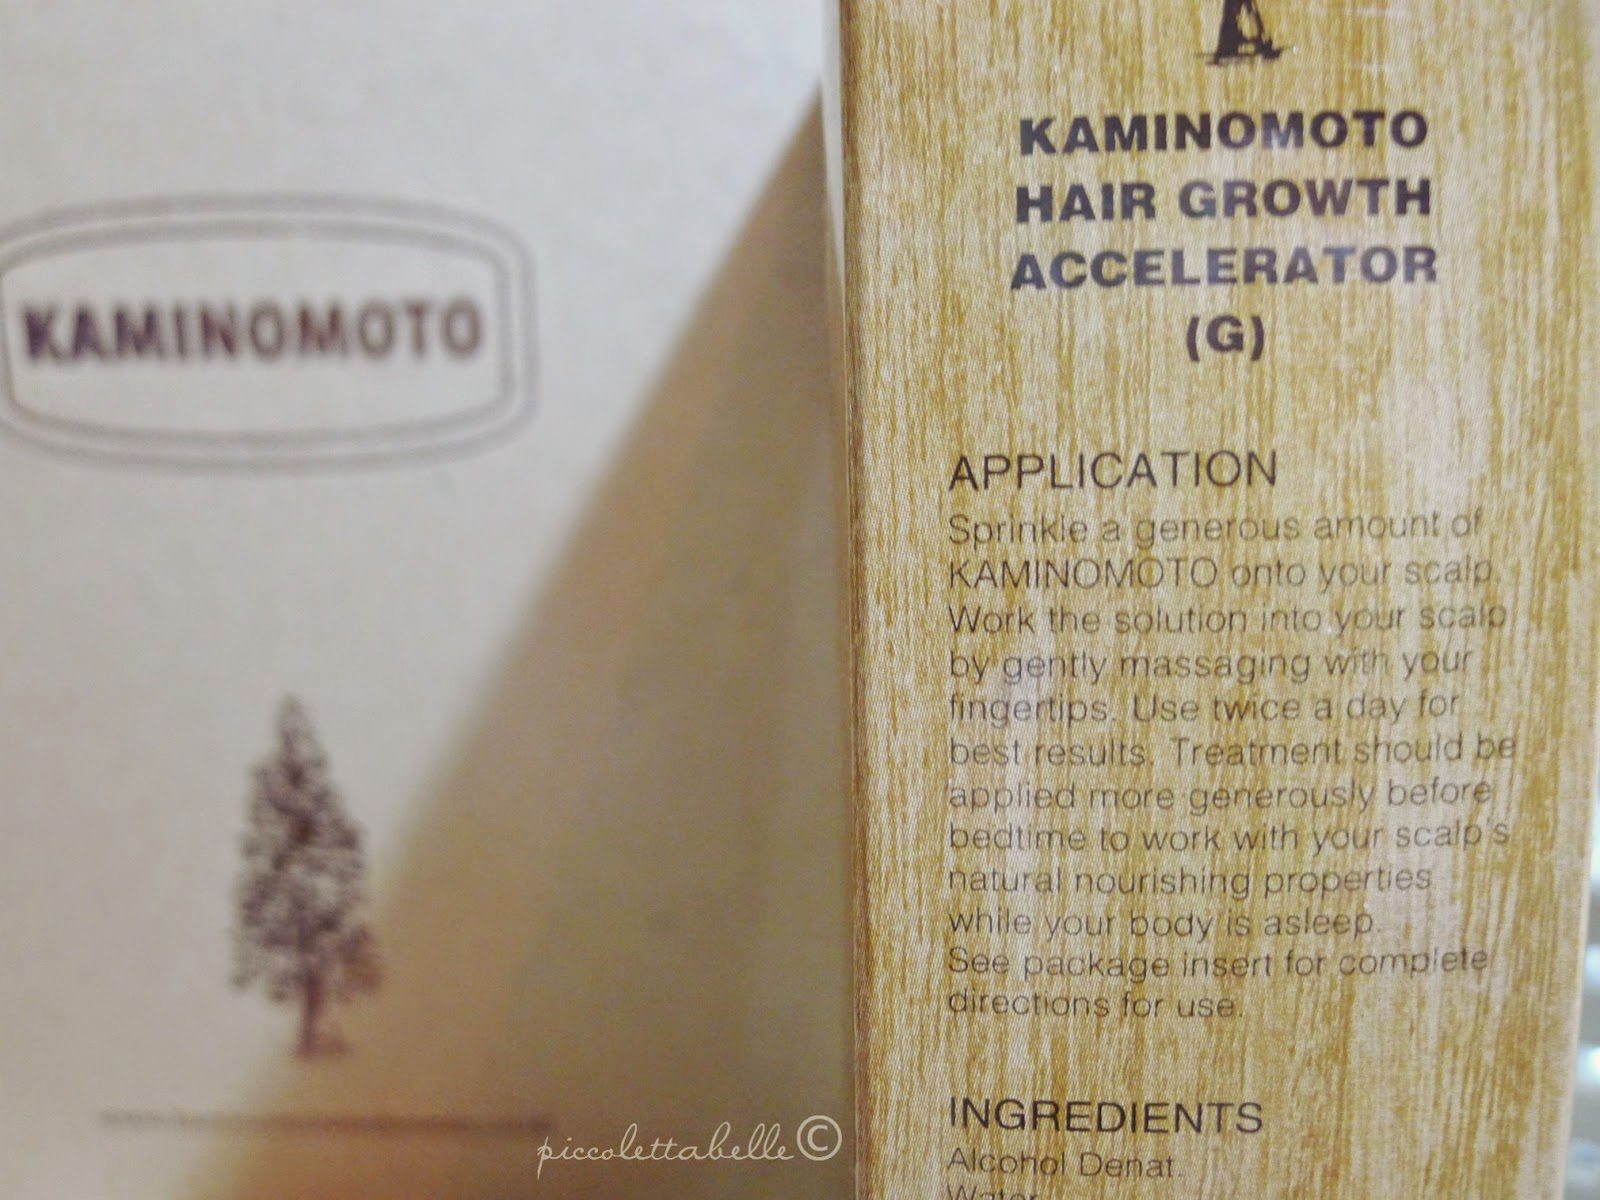 Beauty Blog By Deedee Young Sponsored Review Kaminomoto Hair Growth Accelerator 150ml And Heres The Some Explanation Of Application On Side Box